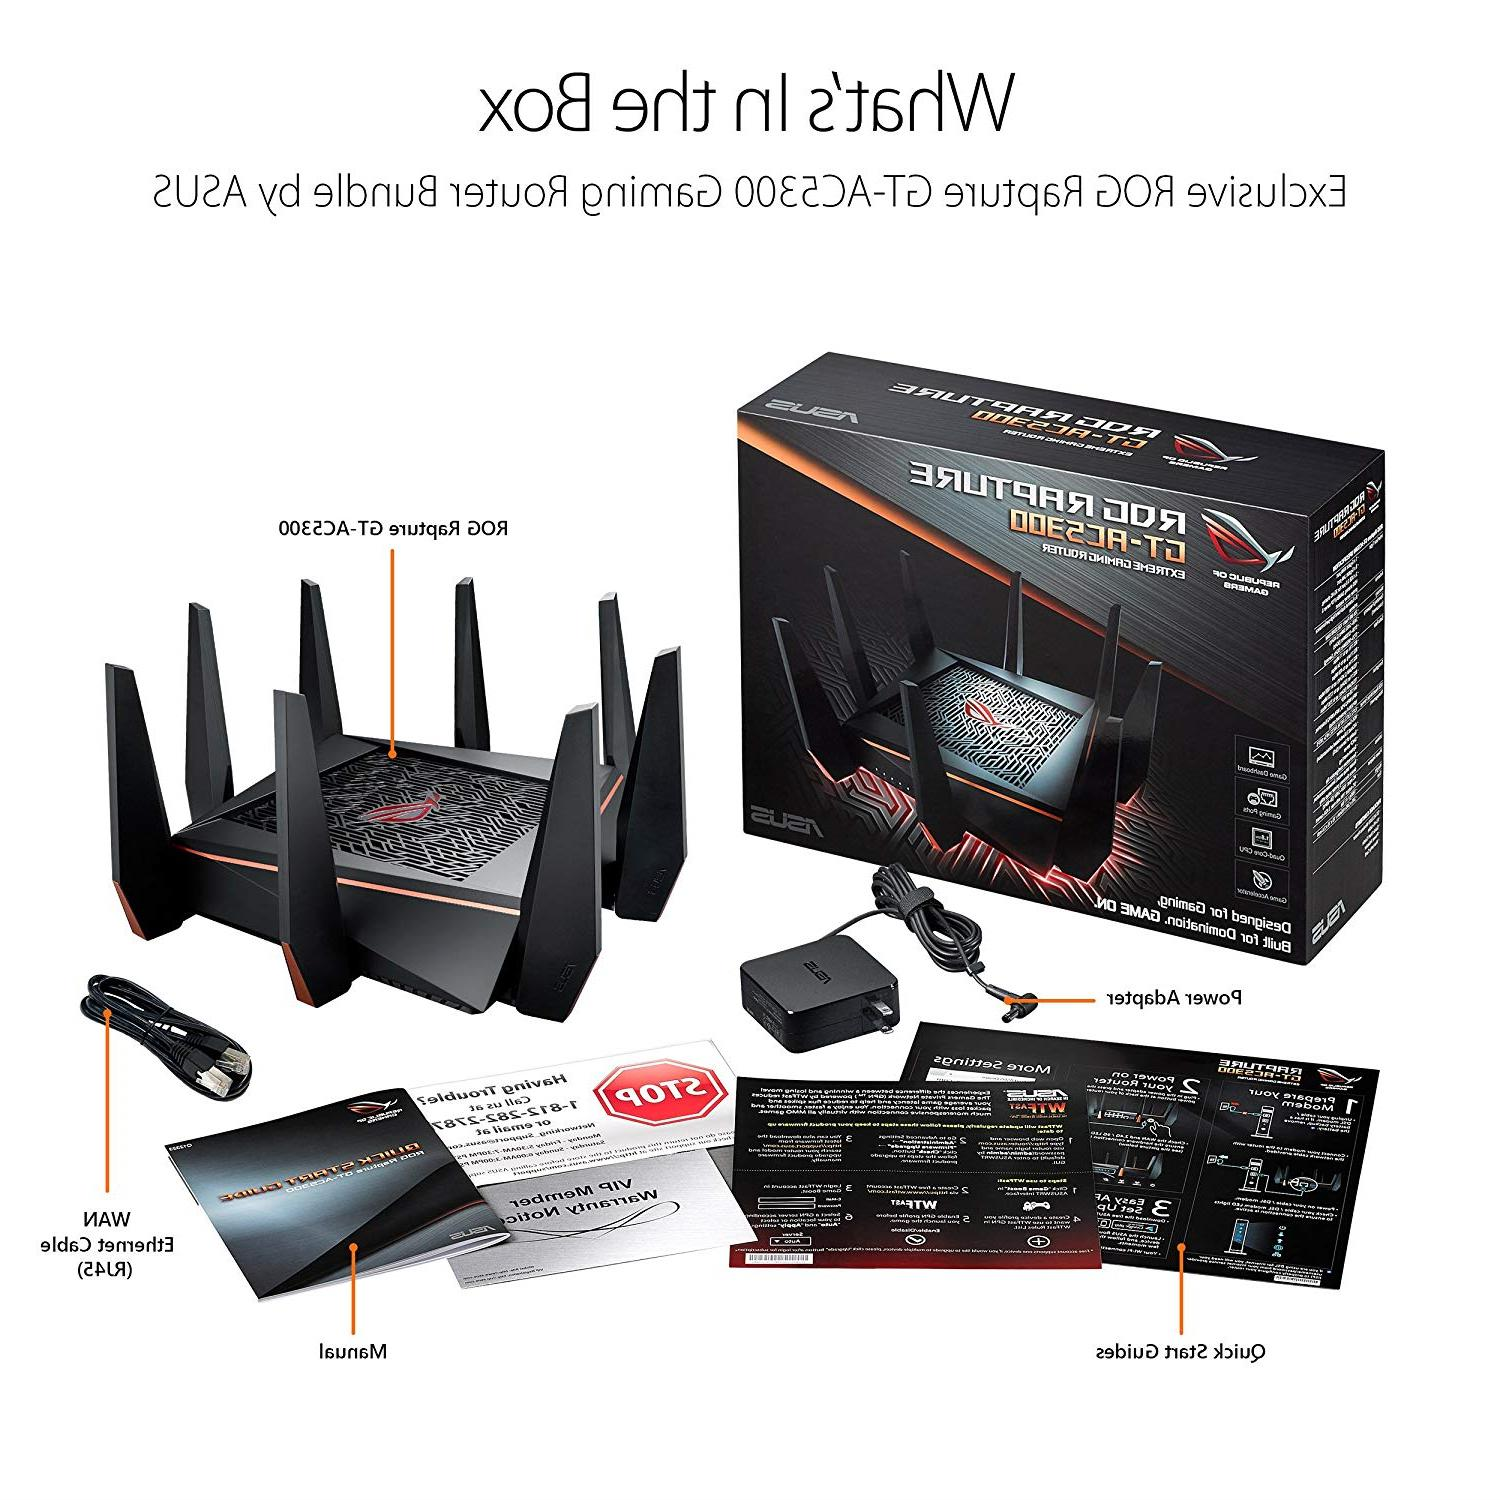 ASUS Router WiFi to Mbps for VR 4K